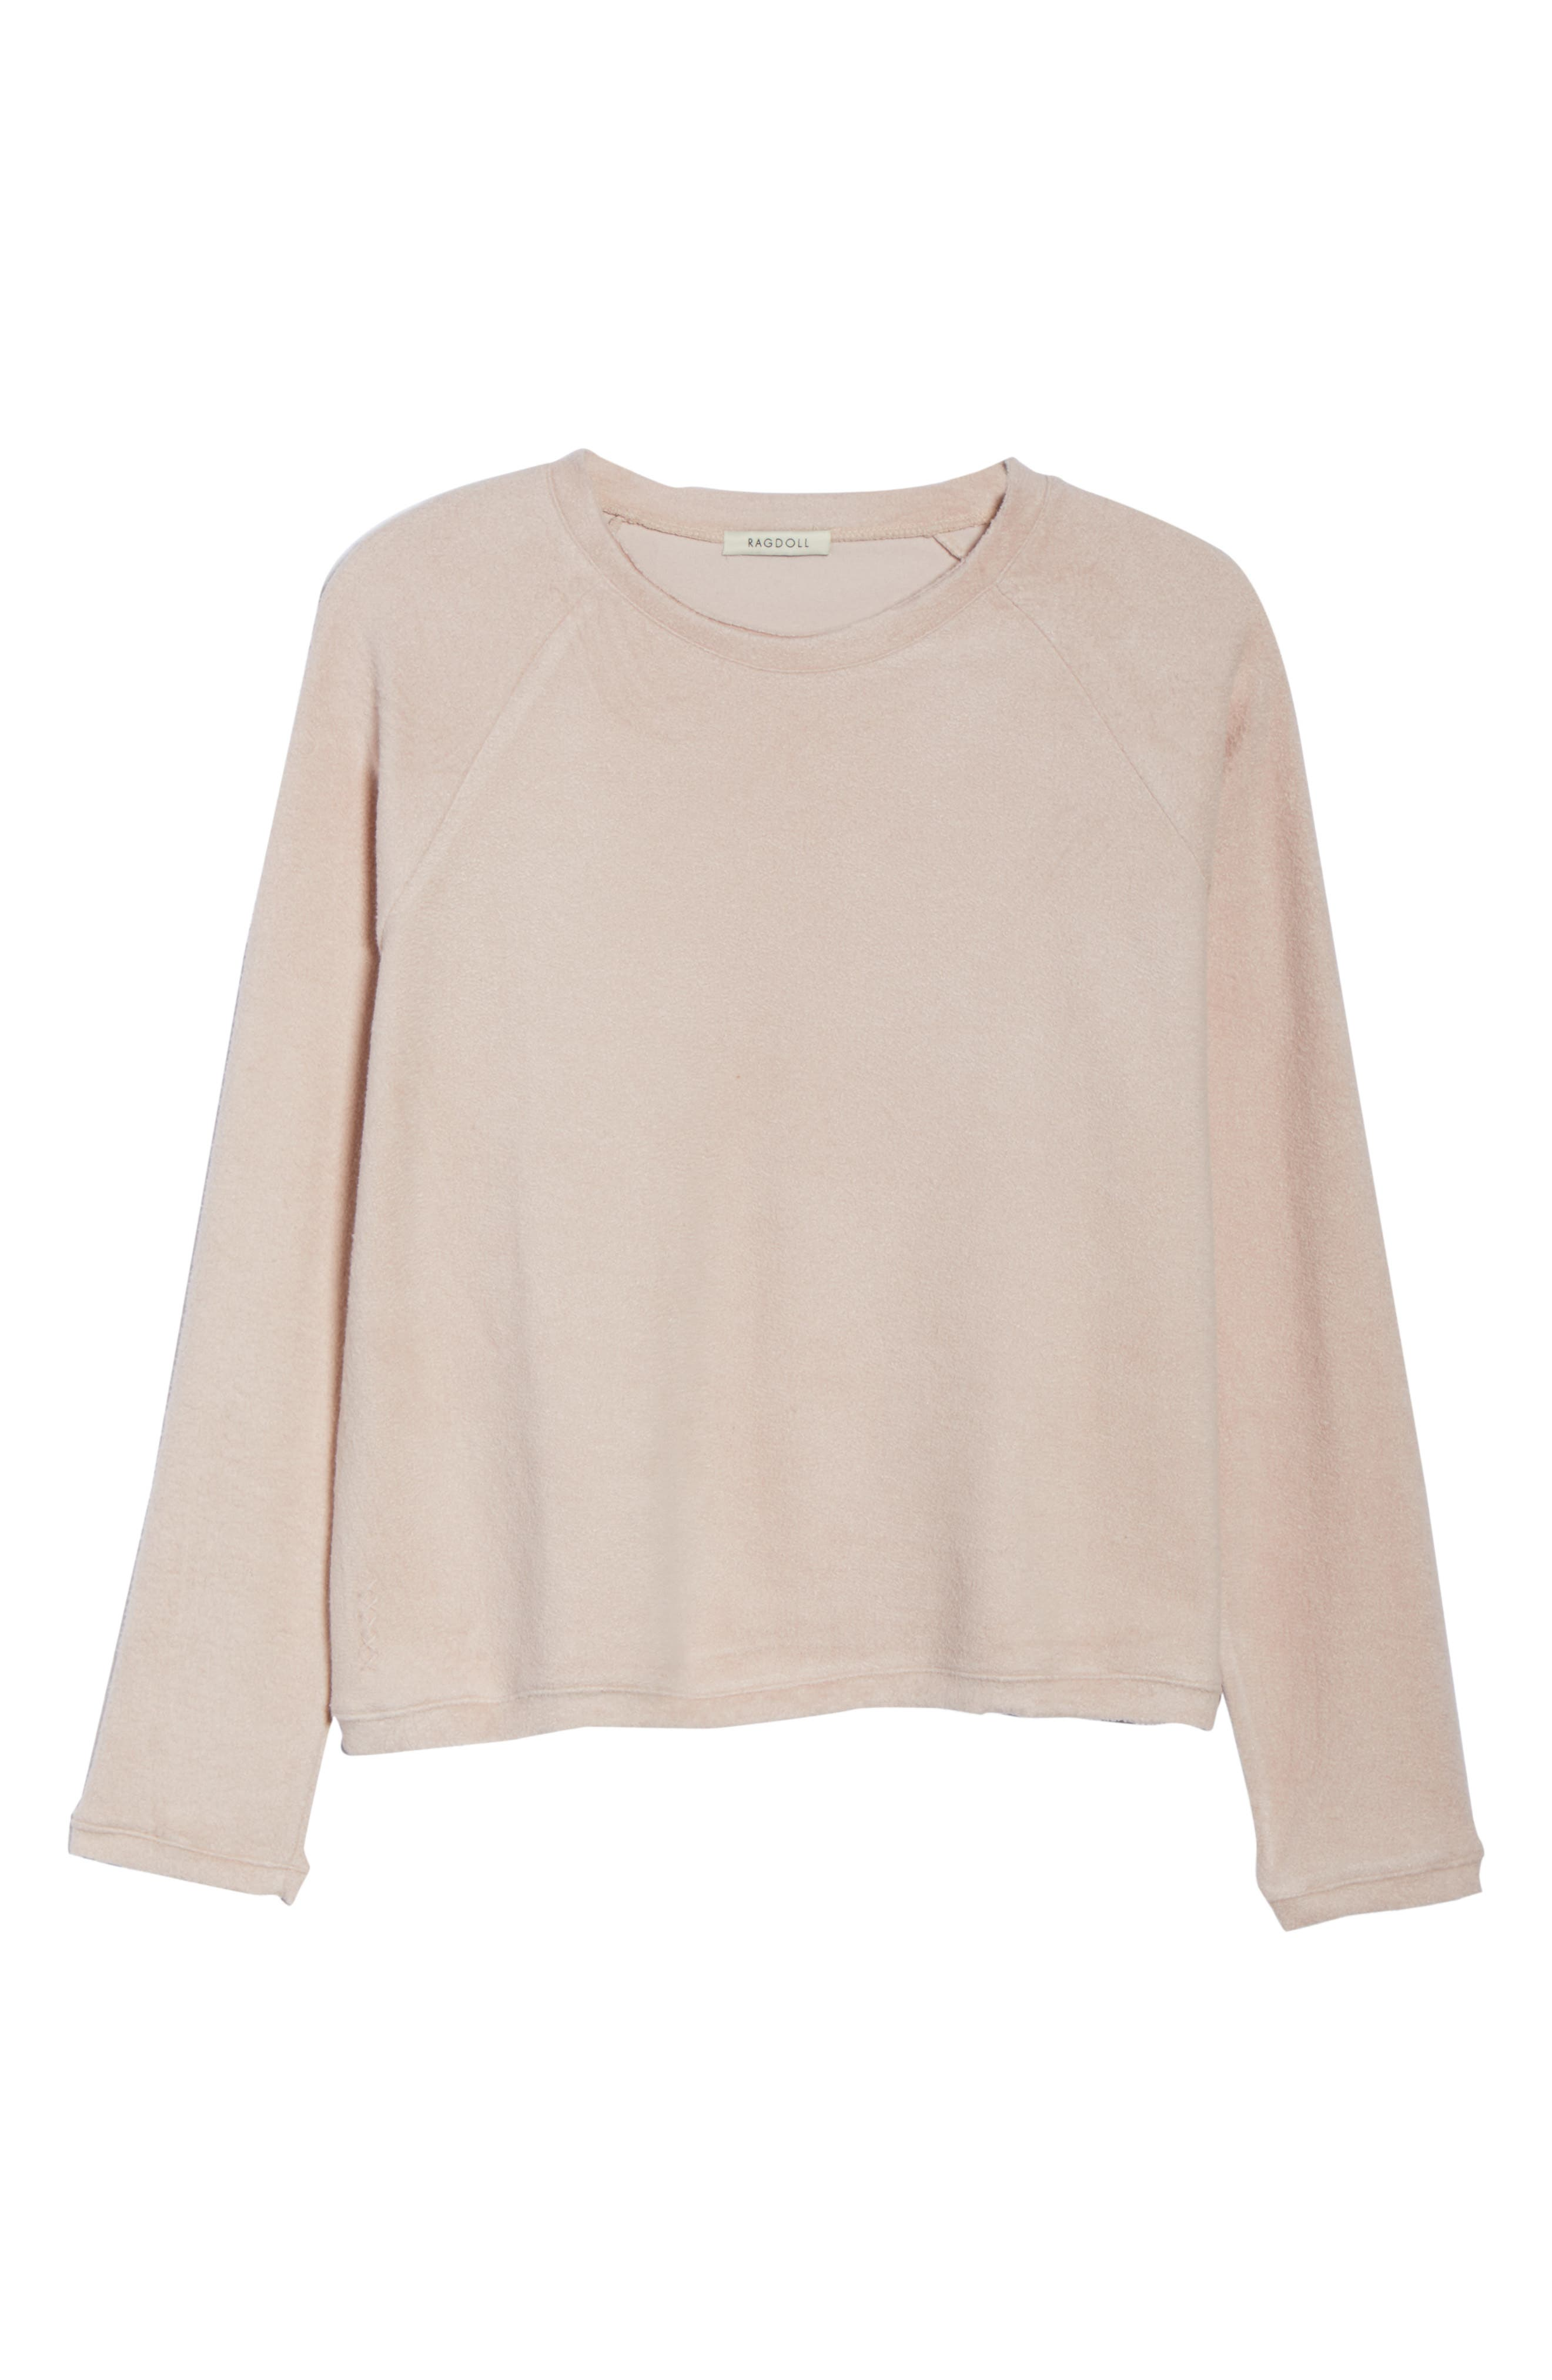 Slouchy Sweatshirt,                             Alternate thumbnail 6, color,                             680